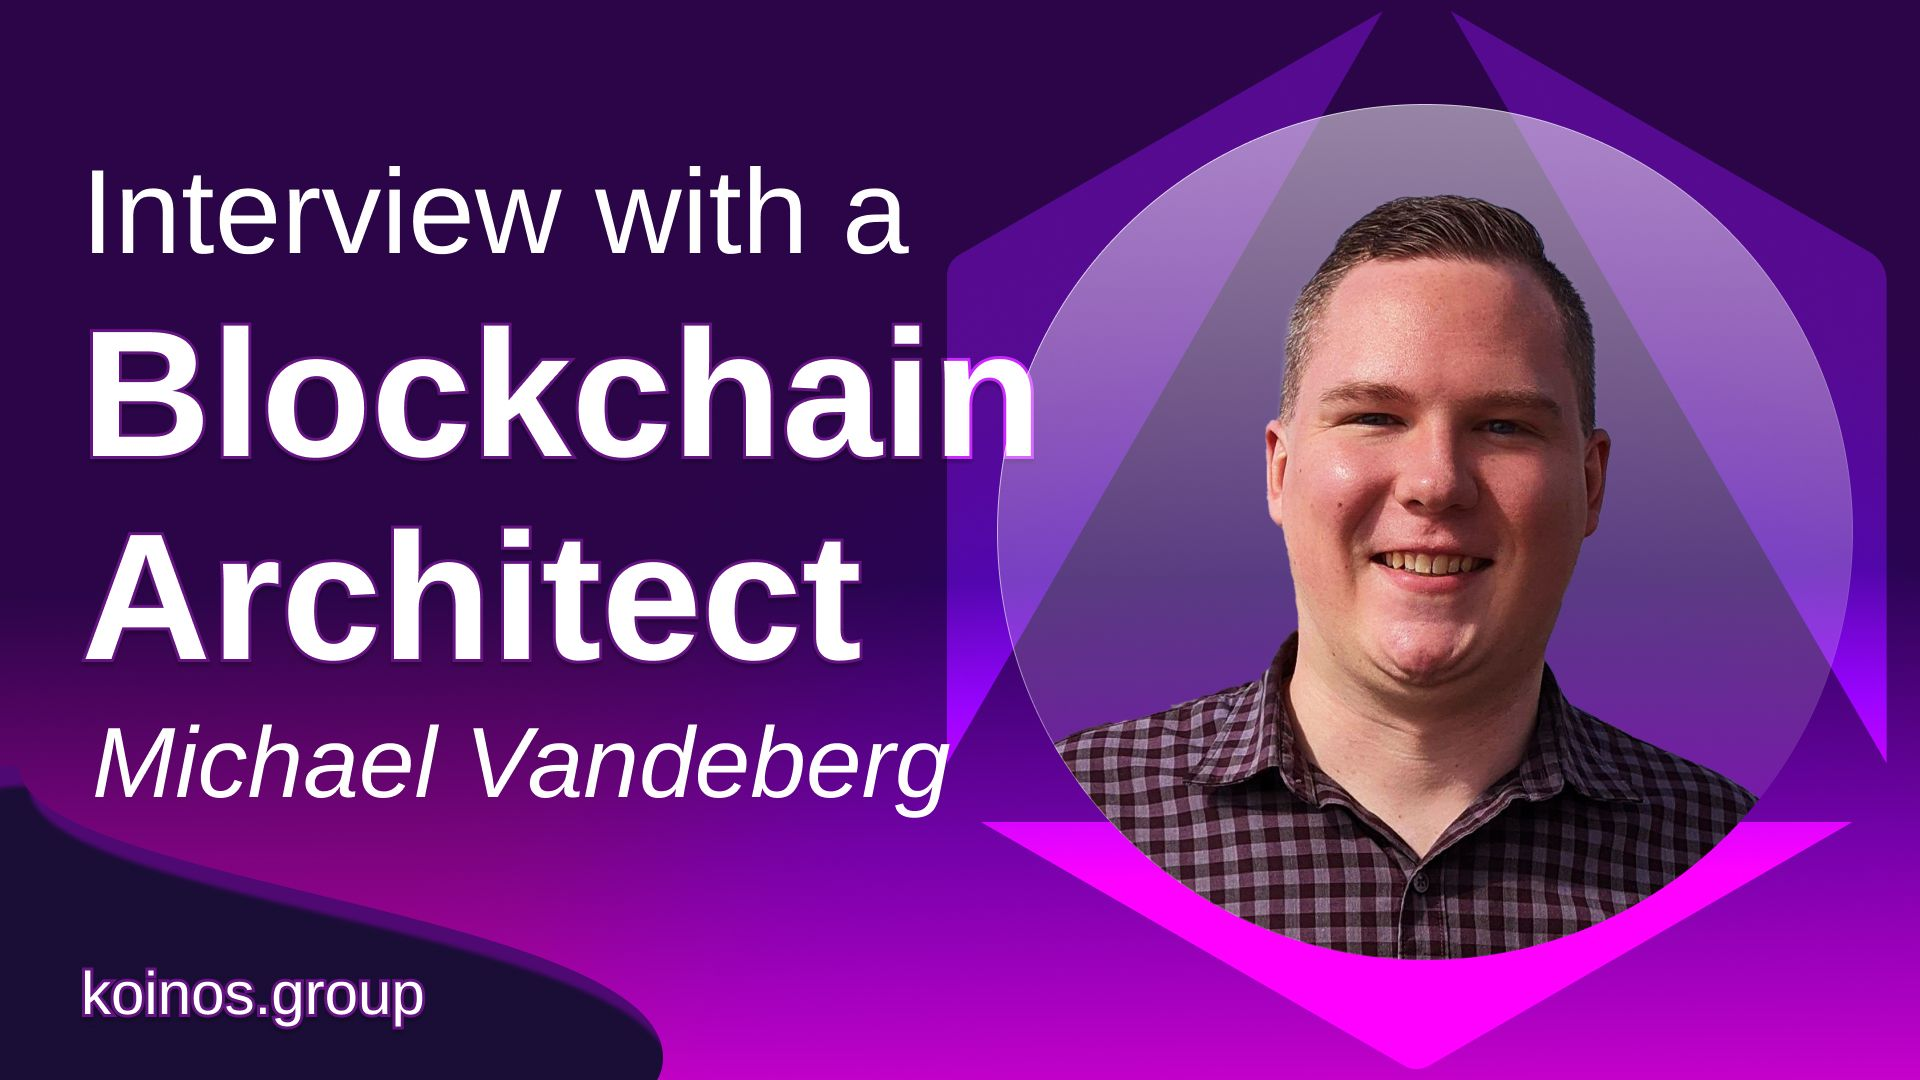 /dapp-development-with-michael-vandeberg-an-interview-482534wr feature image